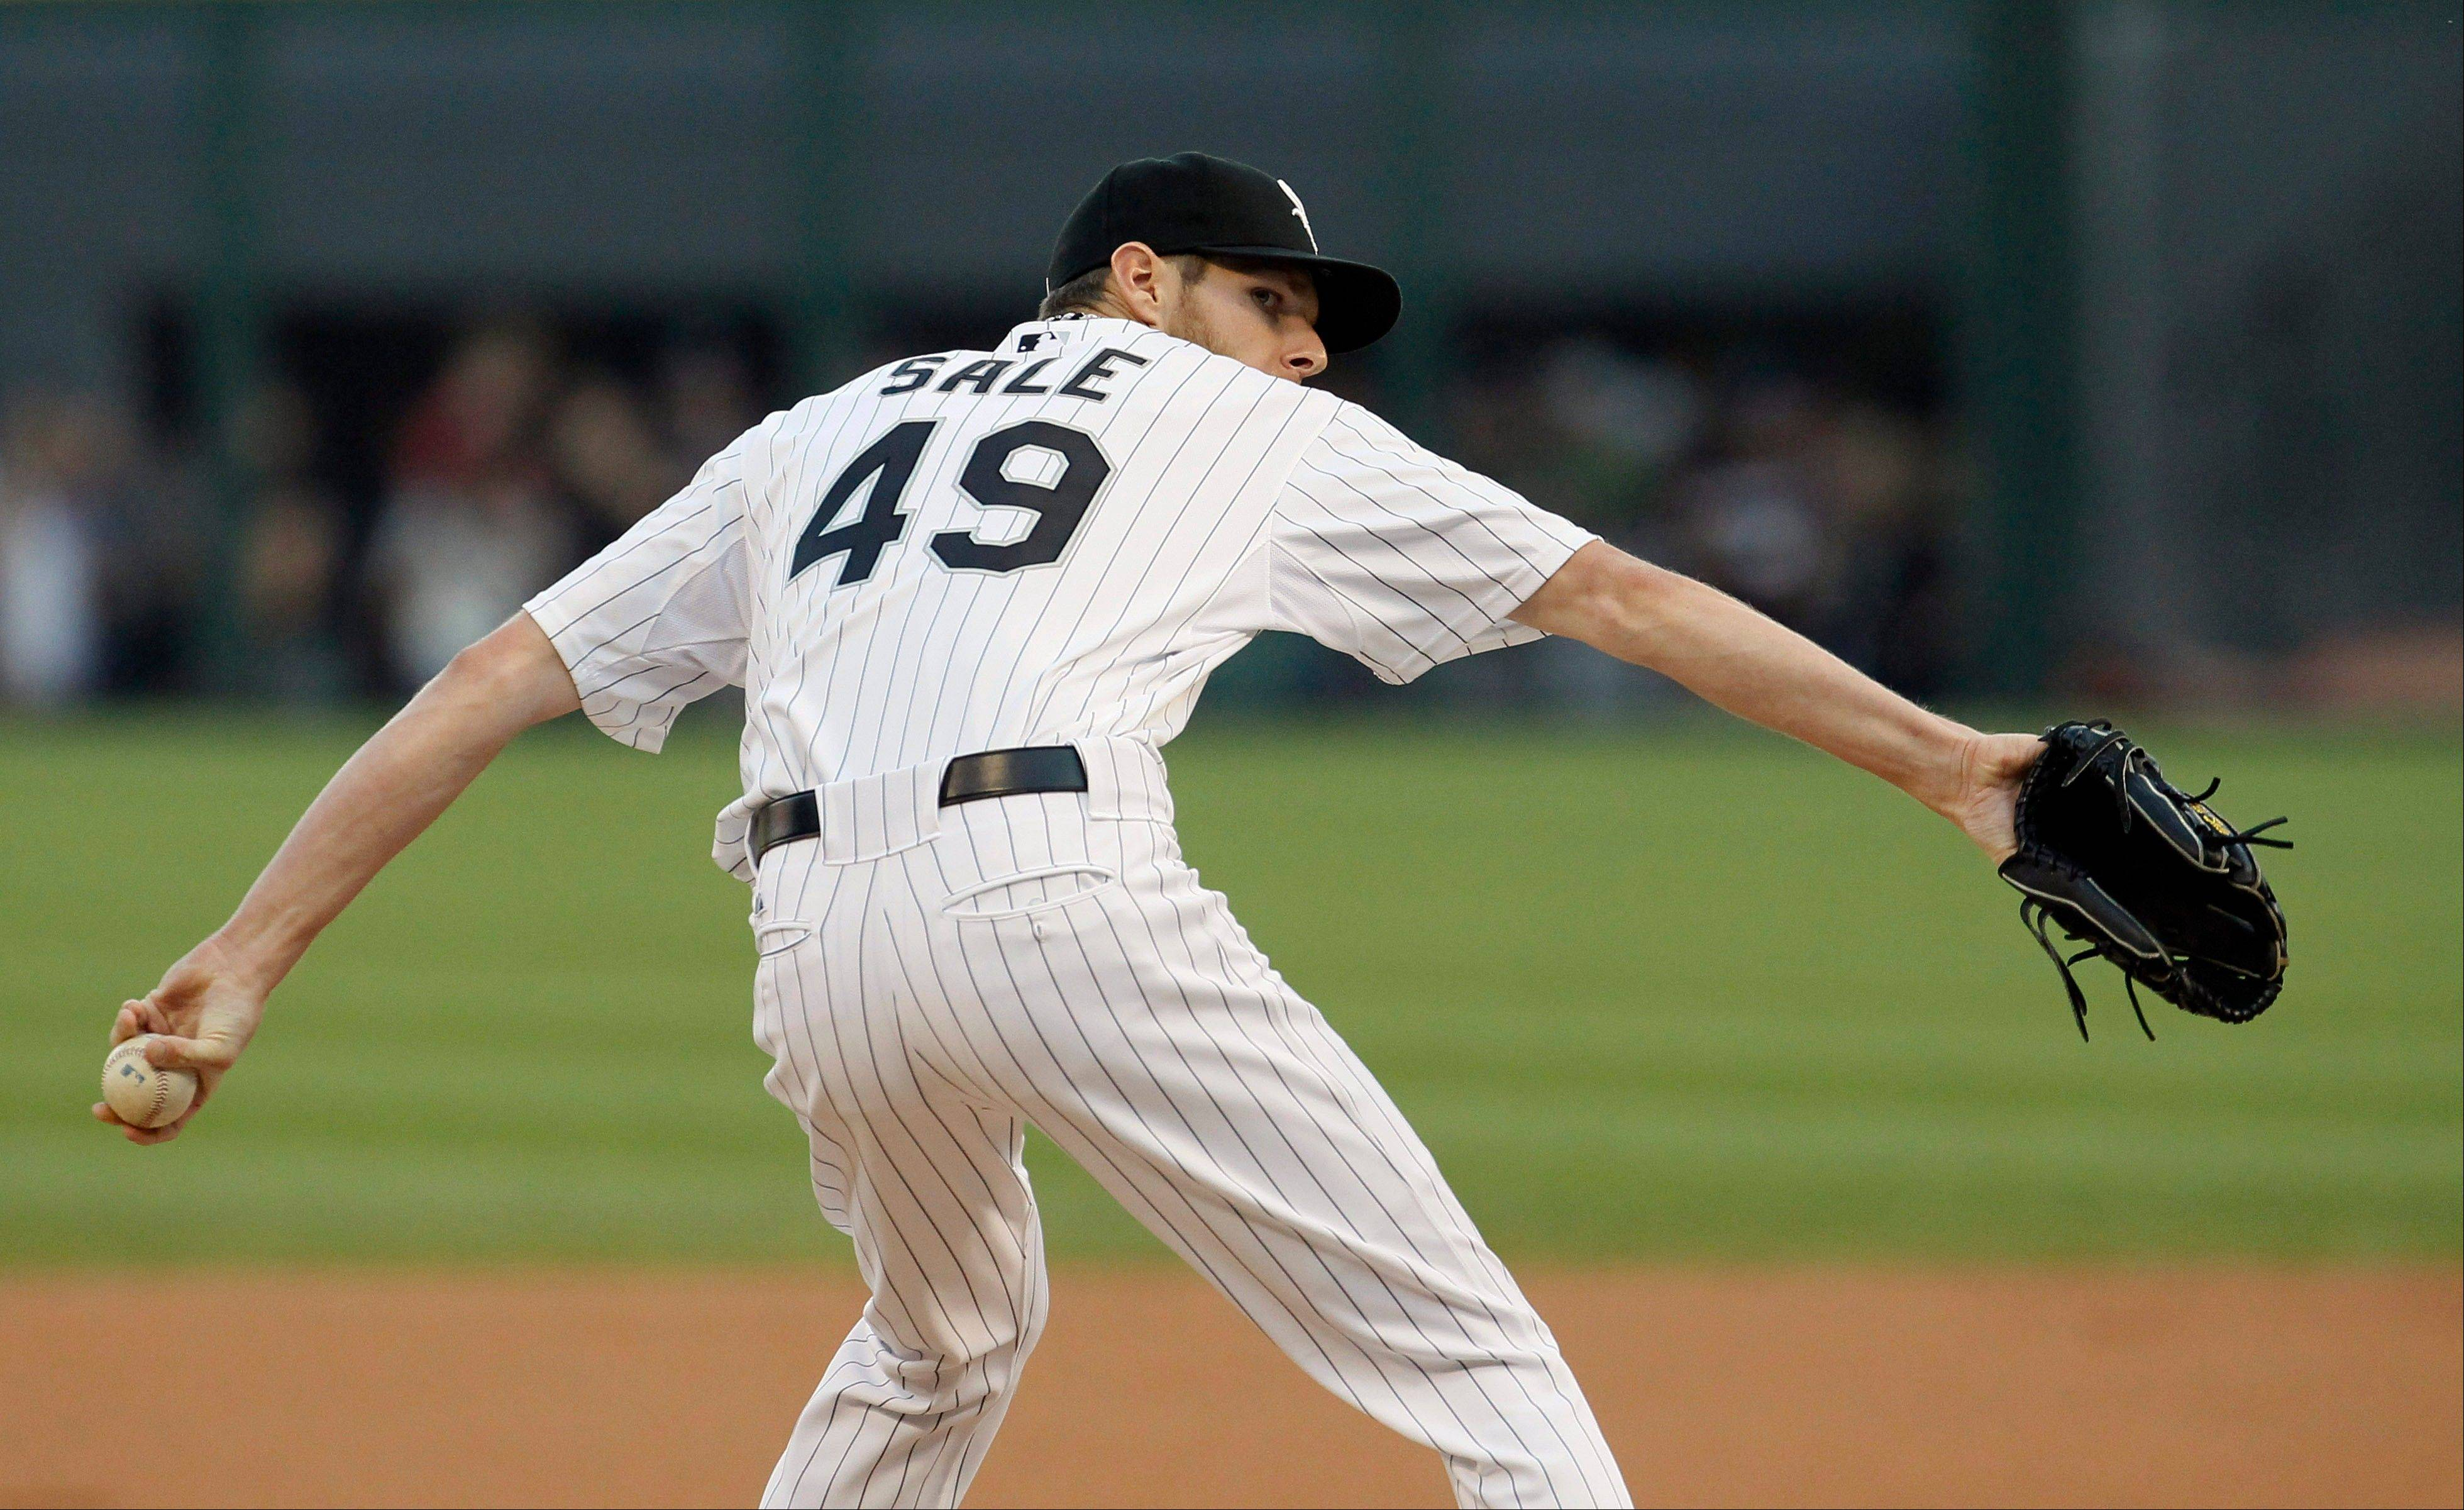 White Sox starting pitcher Chris Sale worked 8 scoreless innings Friday night agiants the Brewers but came away with a no-decision.